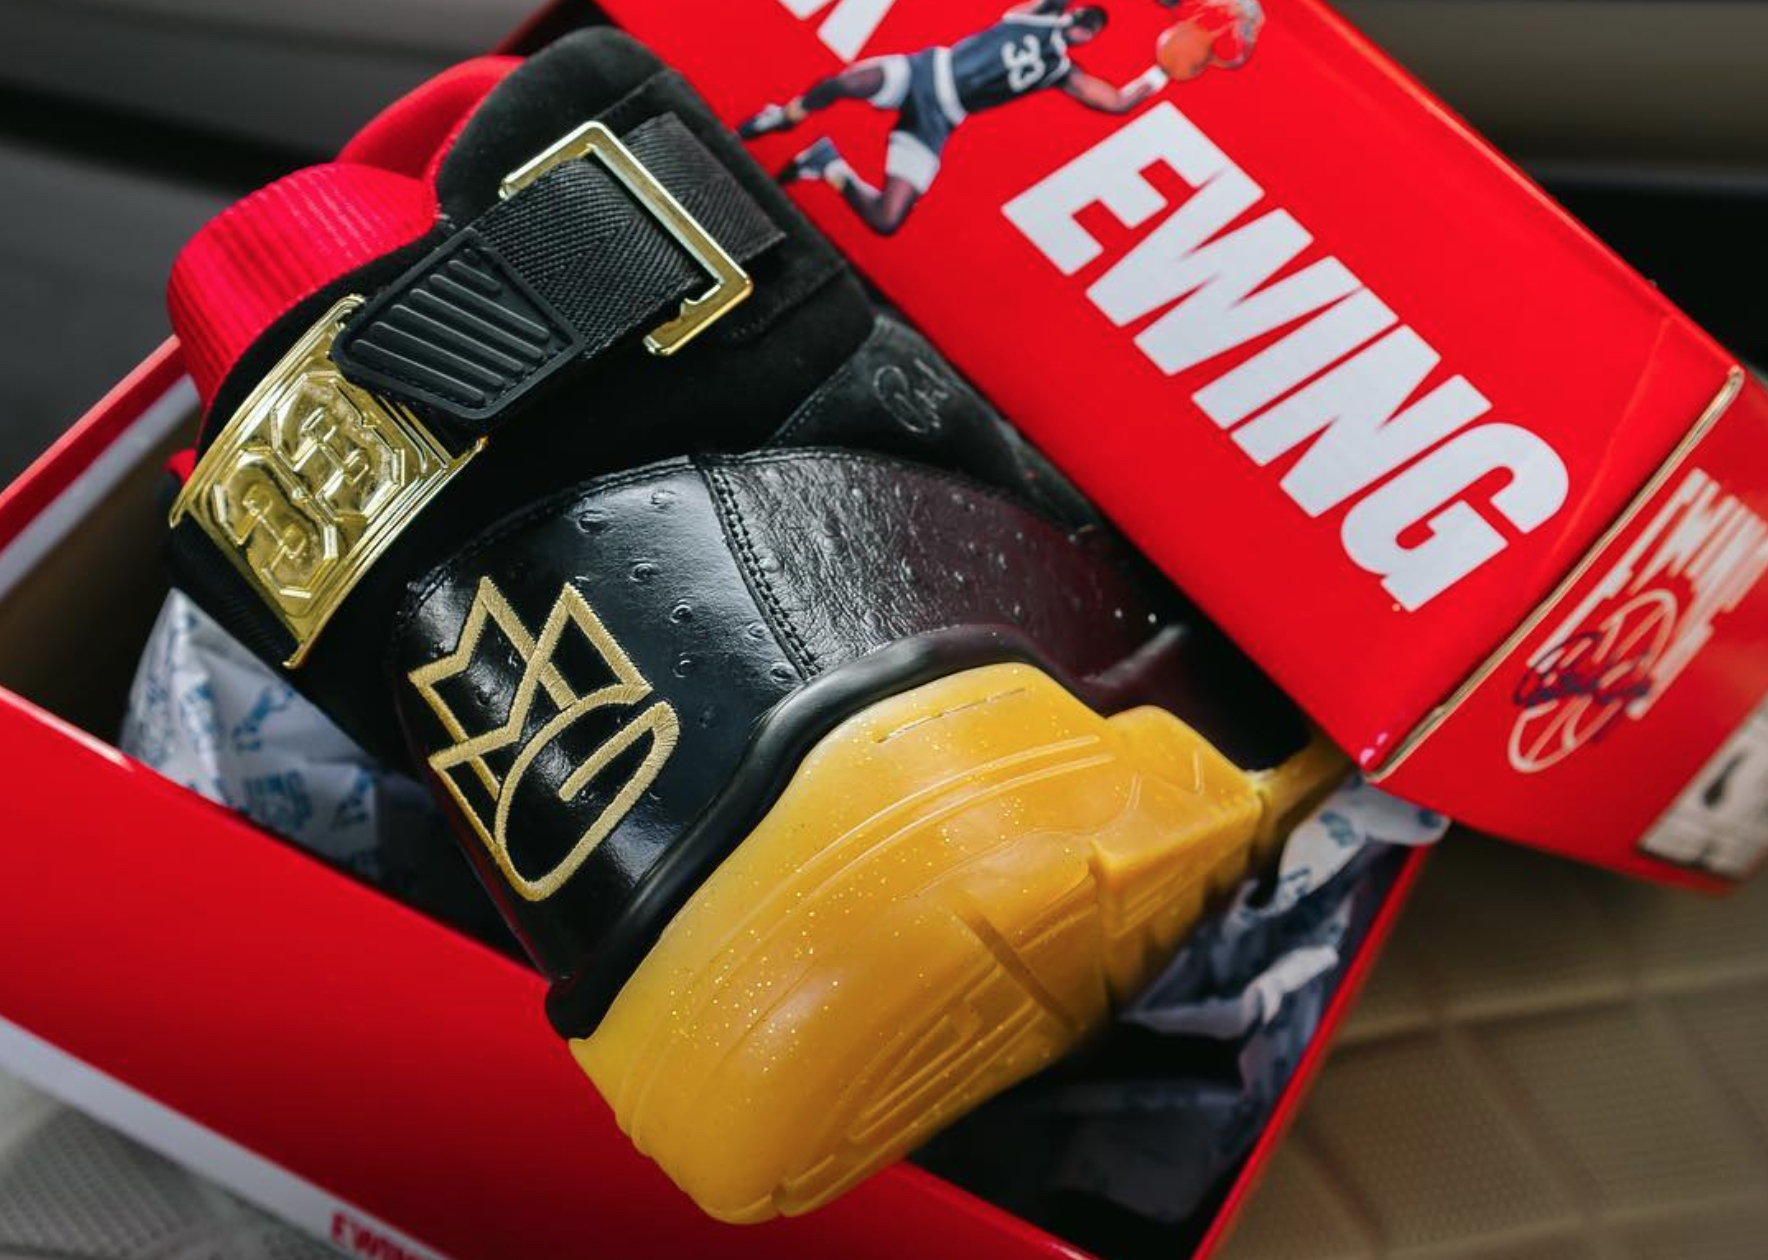 96f14d7eb00a95 Ewing Athletics Archives - Page 2 of 6 - WearTesters